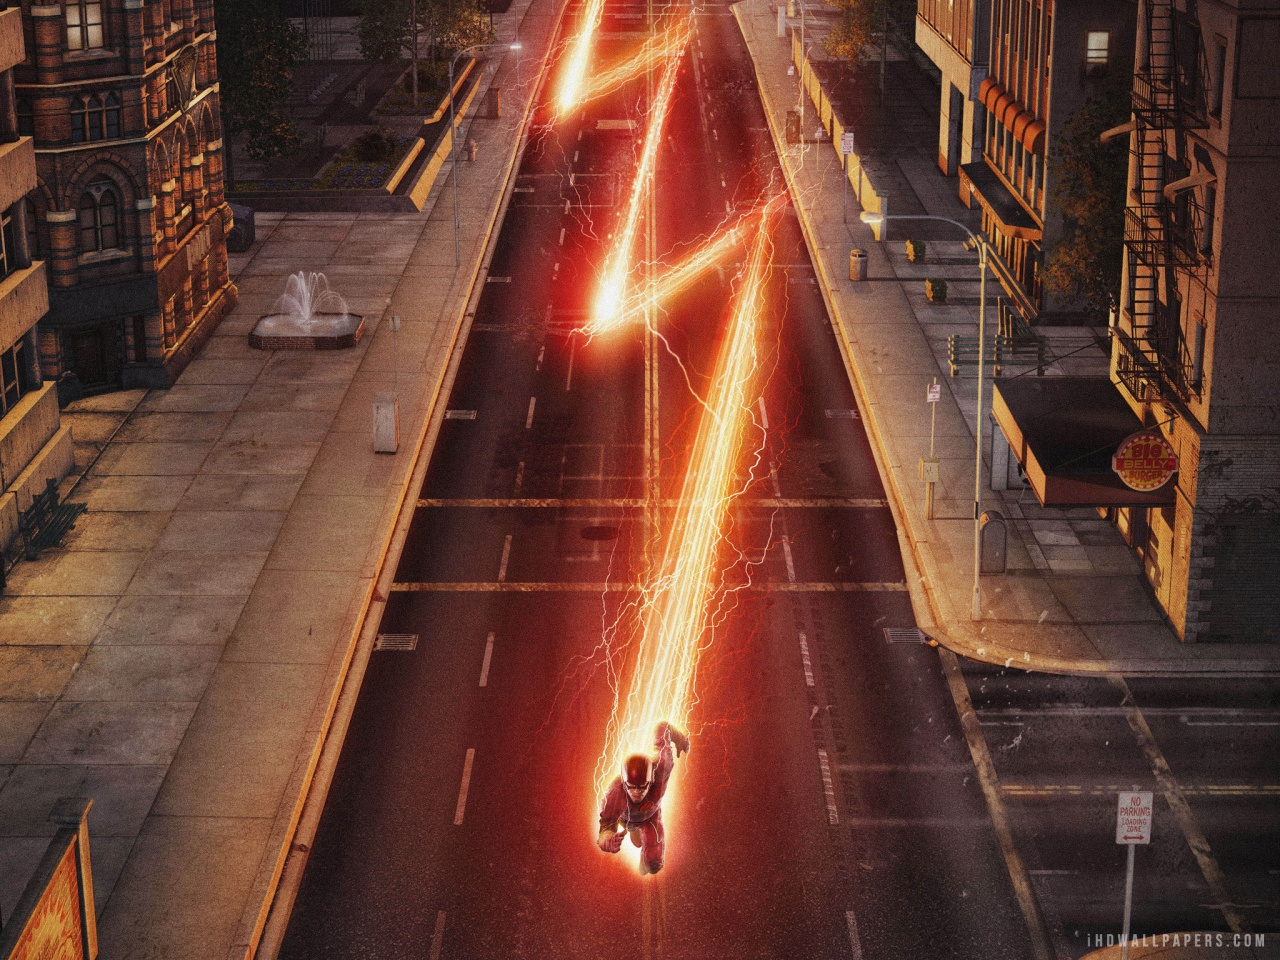 Free Download The Flash Tv Series 2014 Hd Wallpaper Ihd Wallpapers